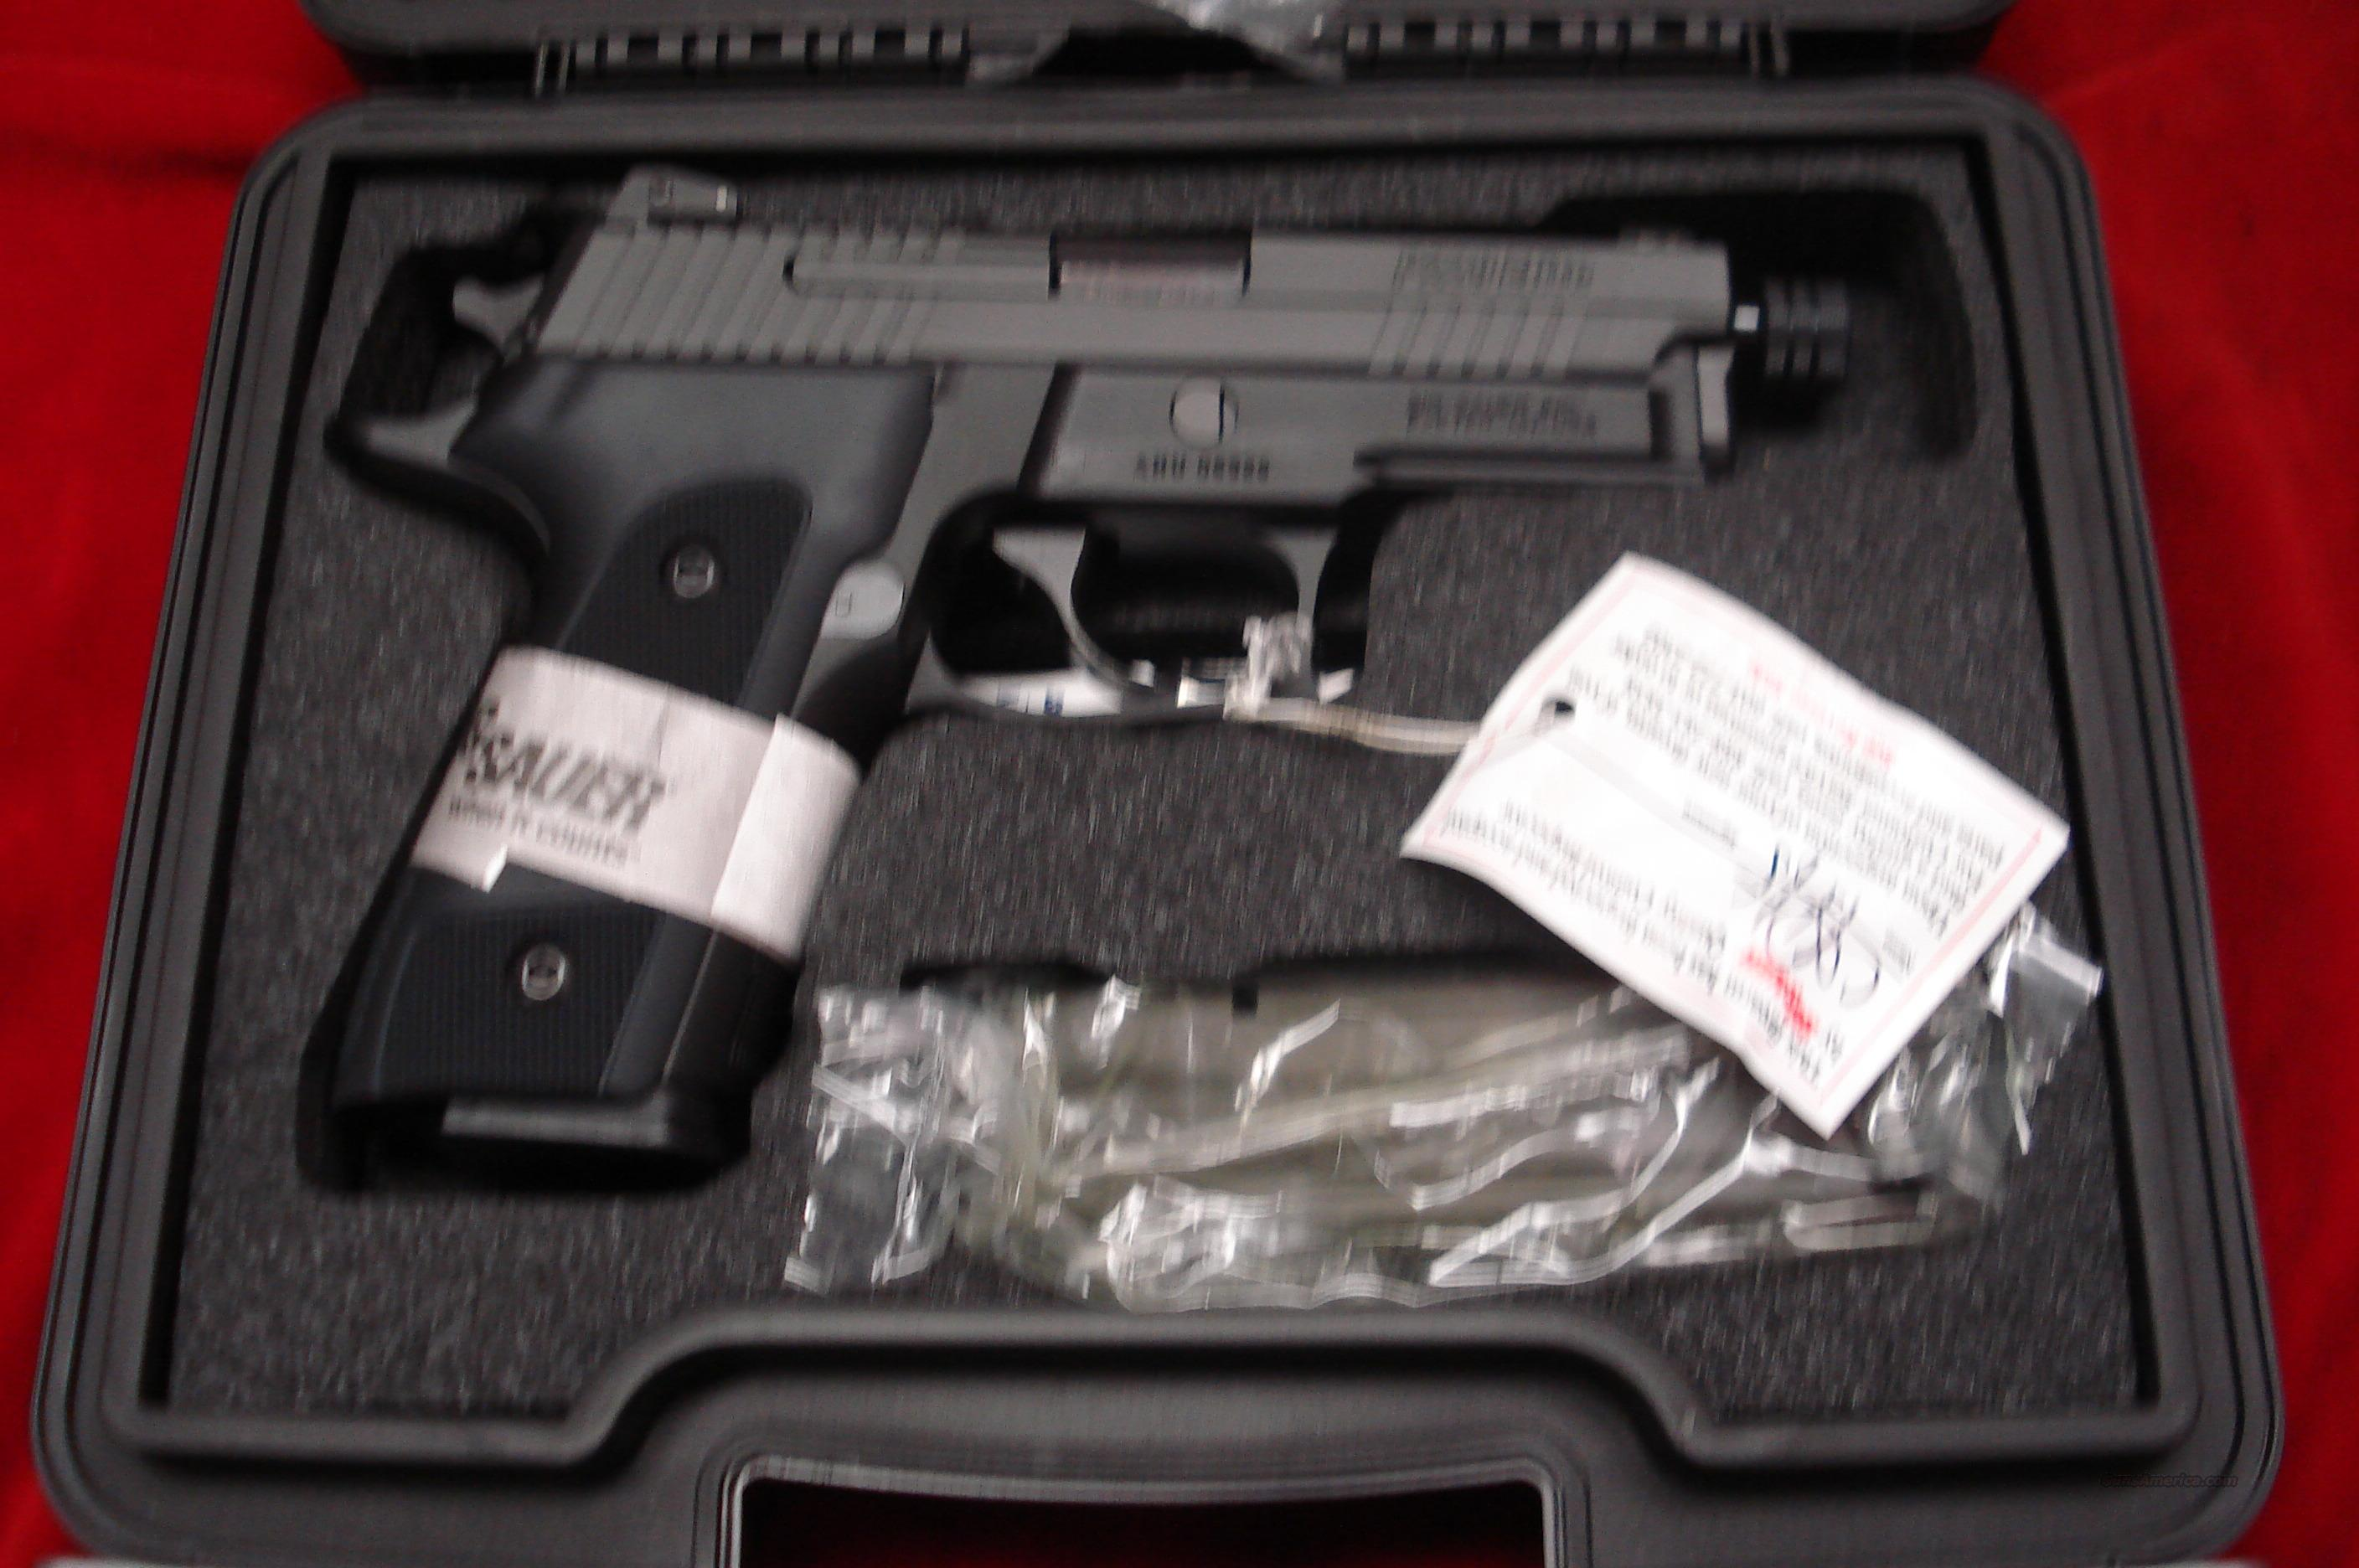 SIG SAUER P229 ELITE THREADED BARREL 9MM WITH NIGHT SIGHTS NEW   Guns > Pistols > Sig - Sauer/Sigarms Pistols > P229